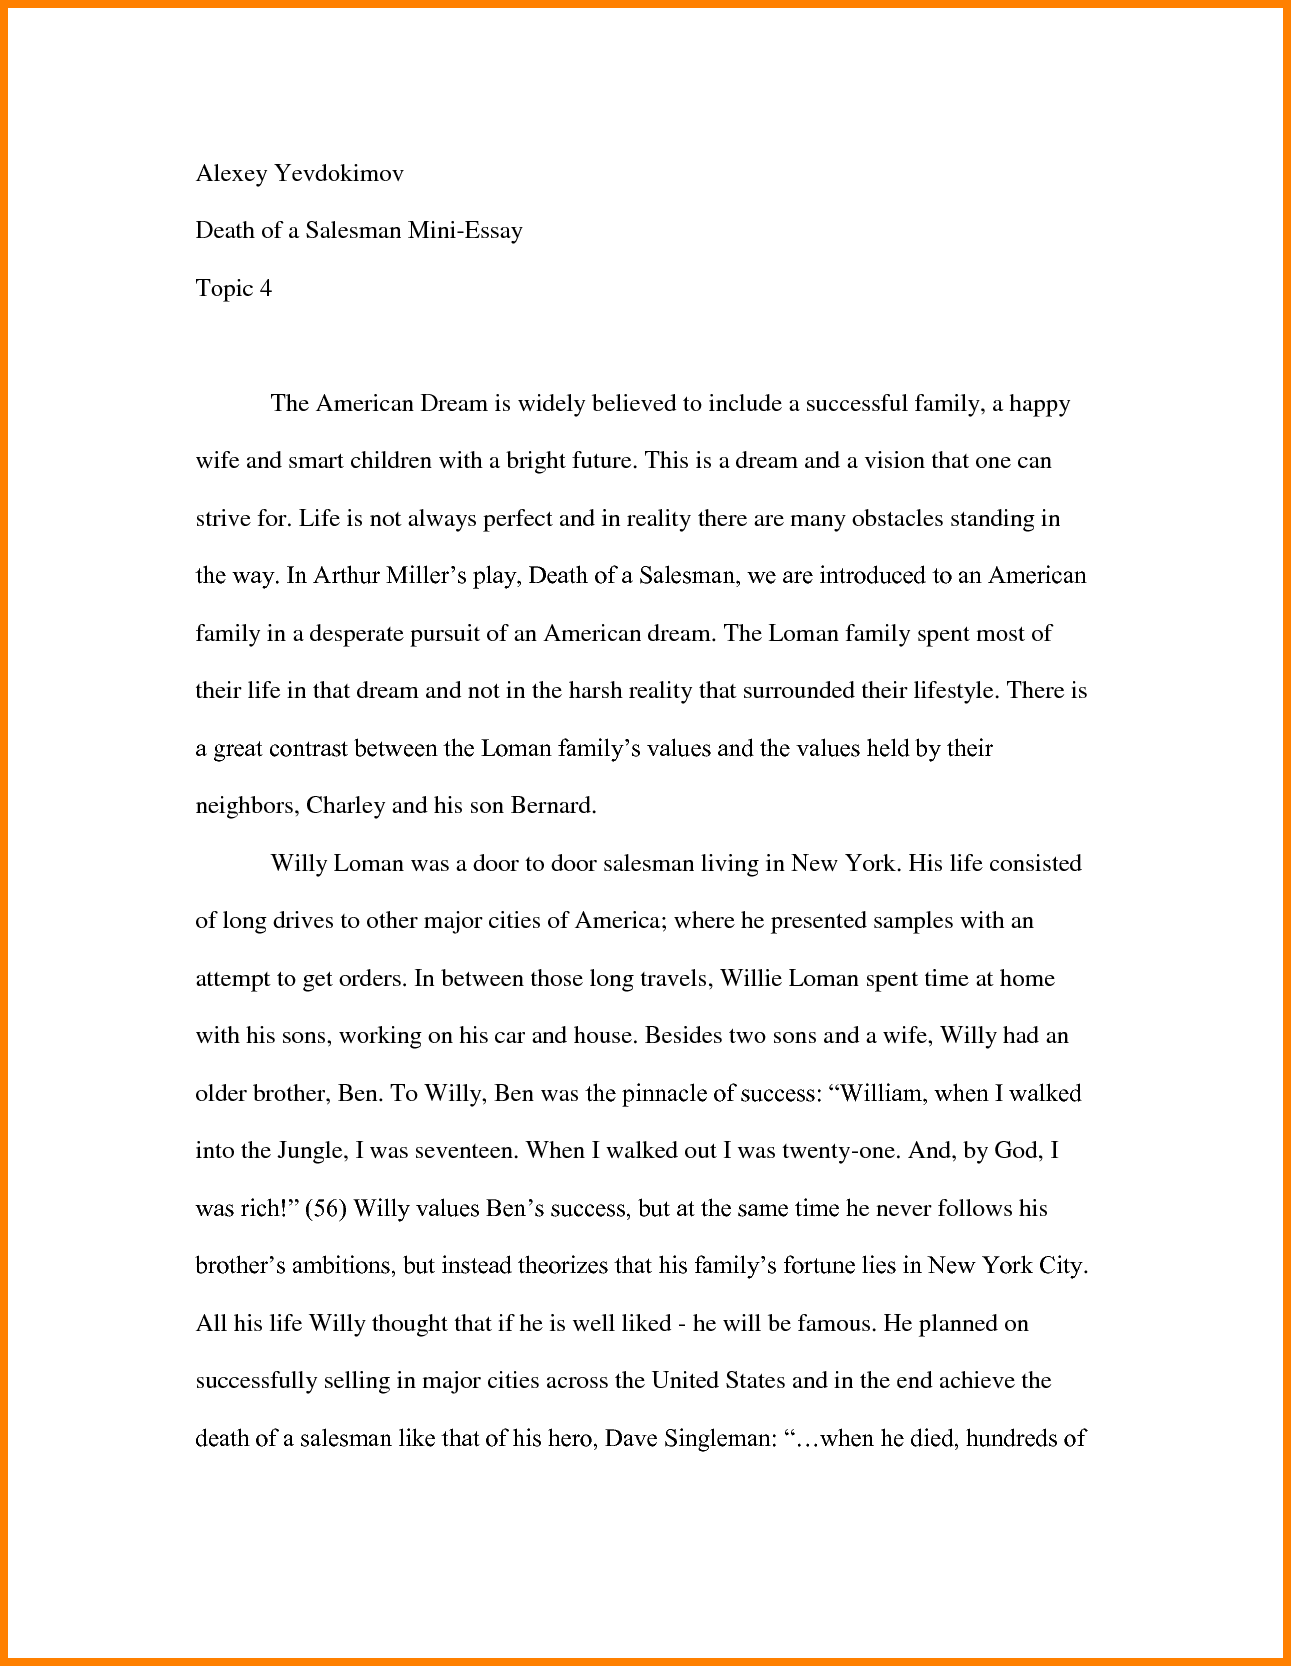 013 How To Start Off Good Essay About Yourself Dreaded A Dogs Writing In Spanish Talk Format Full